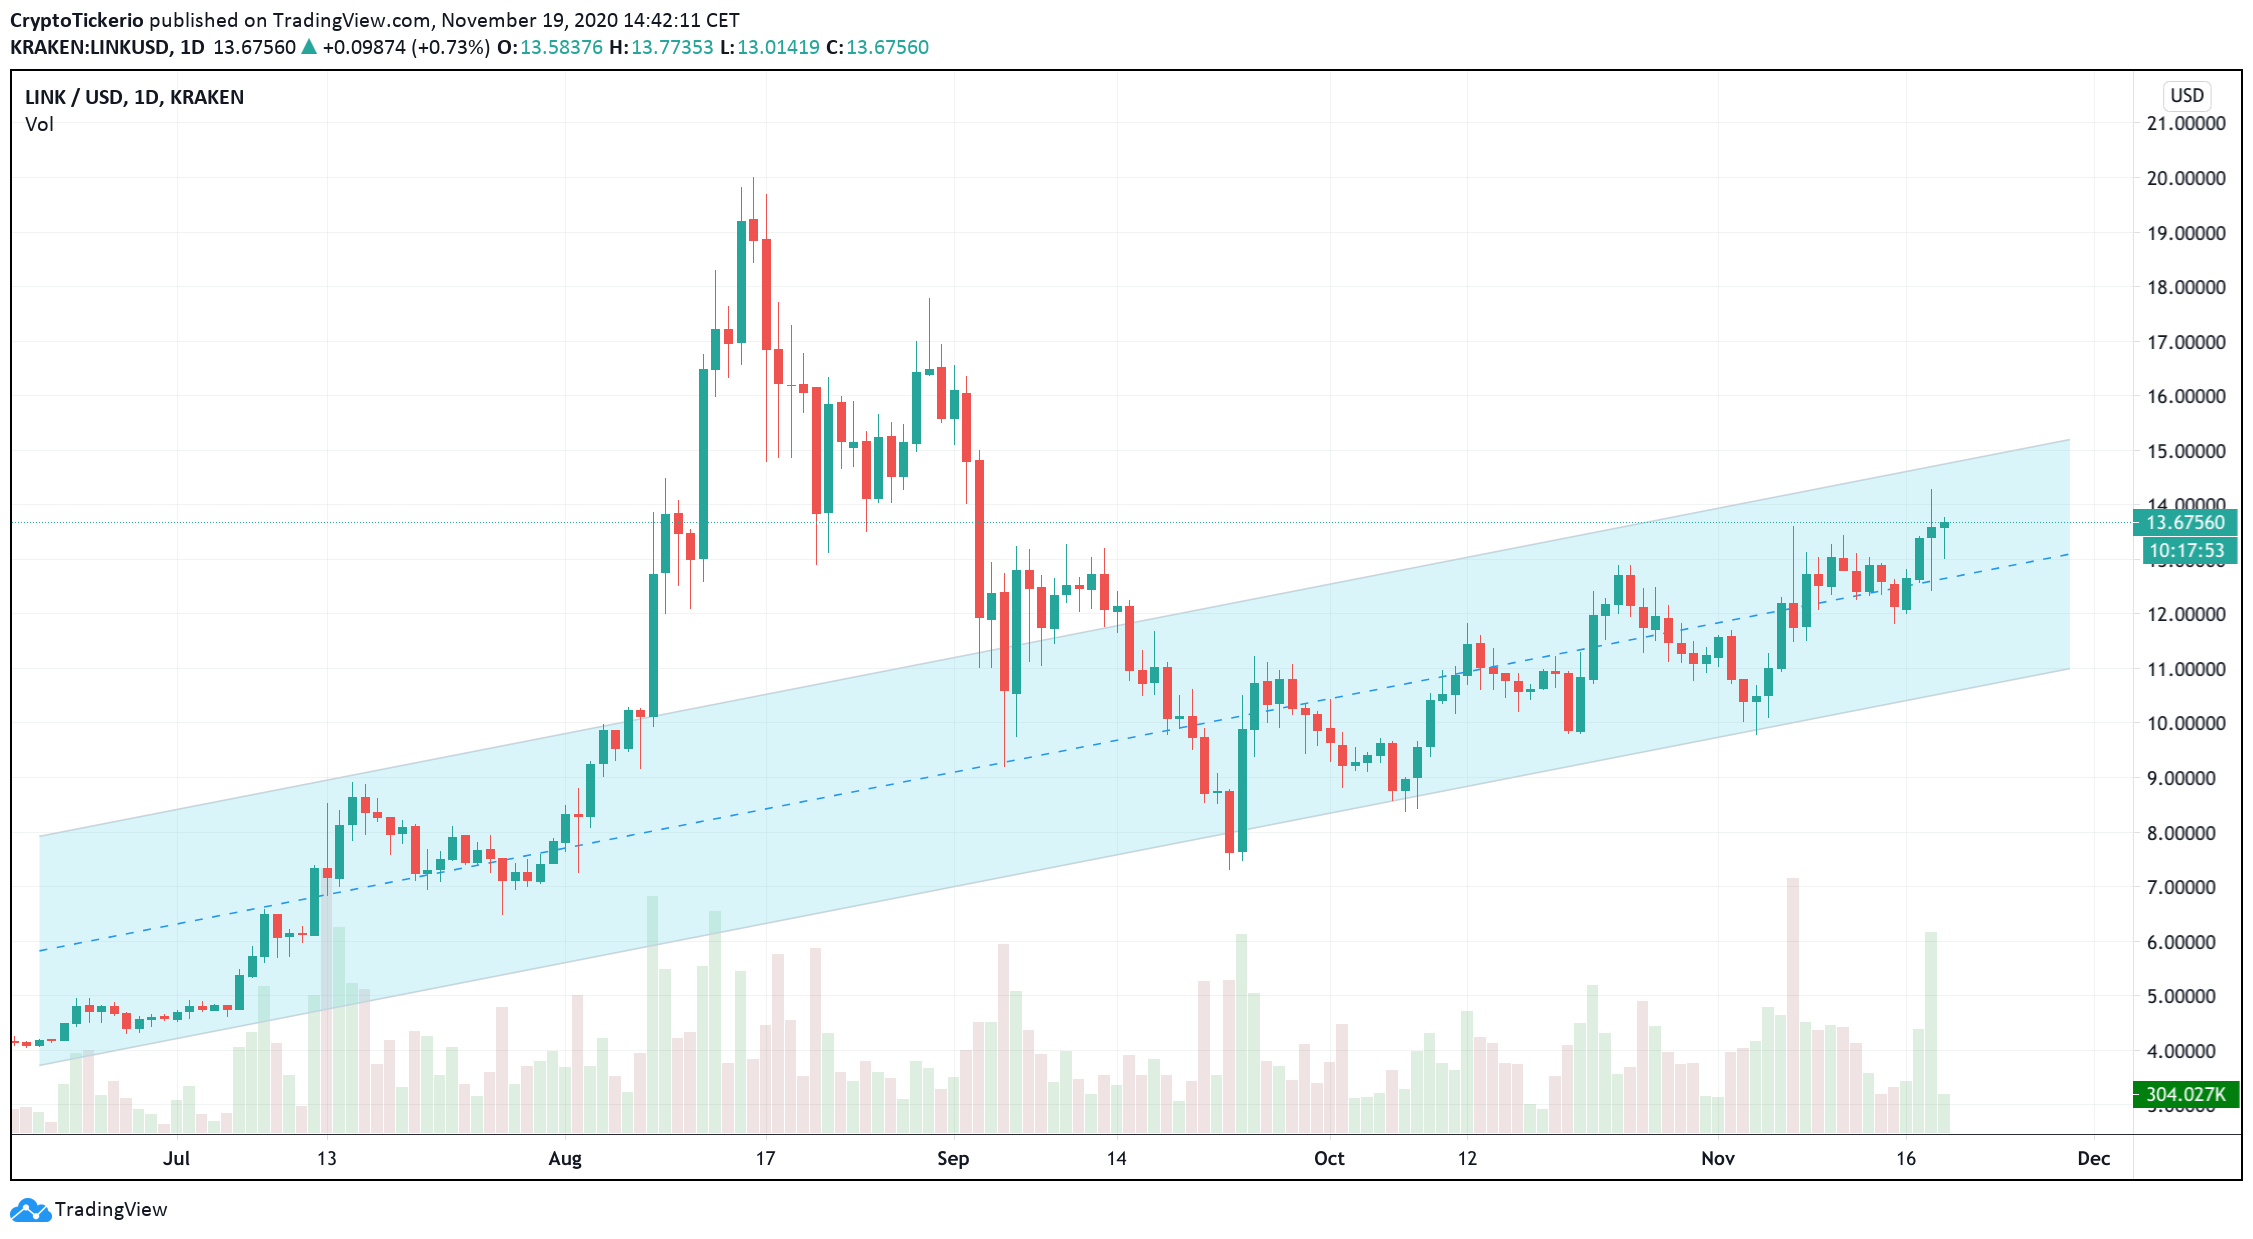 LINK/USD 1-Day showing Chainlink continuation of a normal uptrend